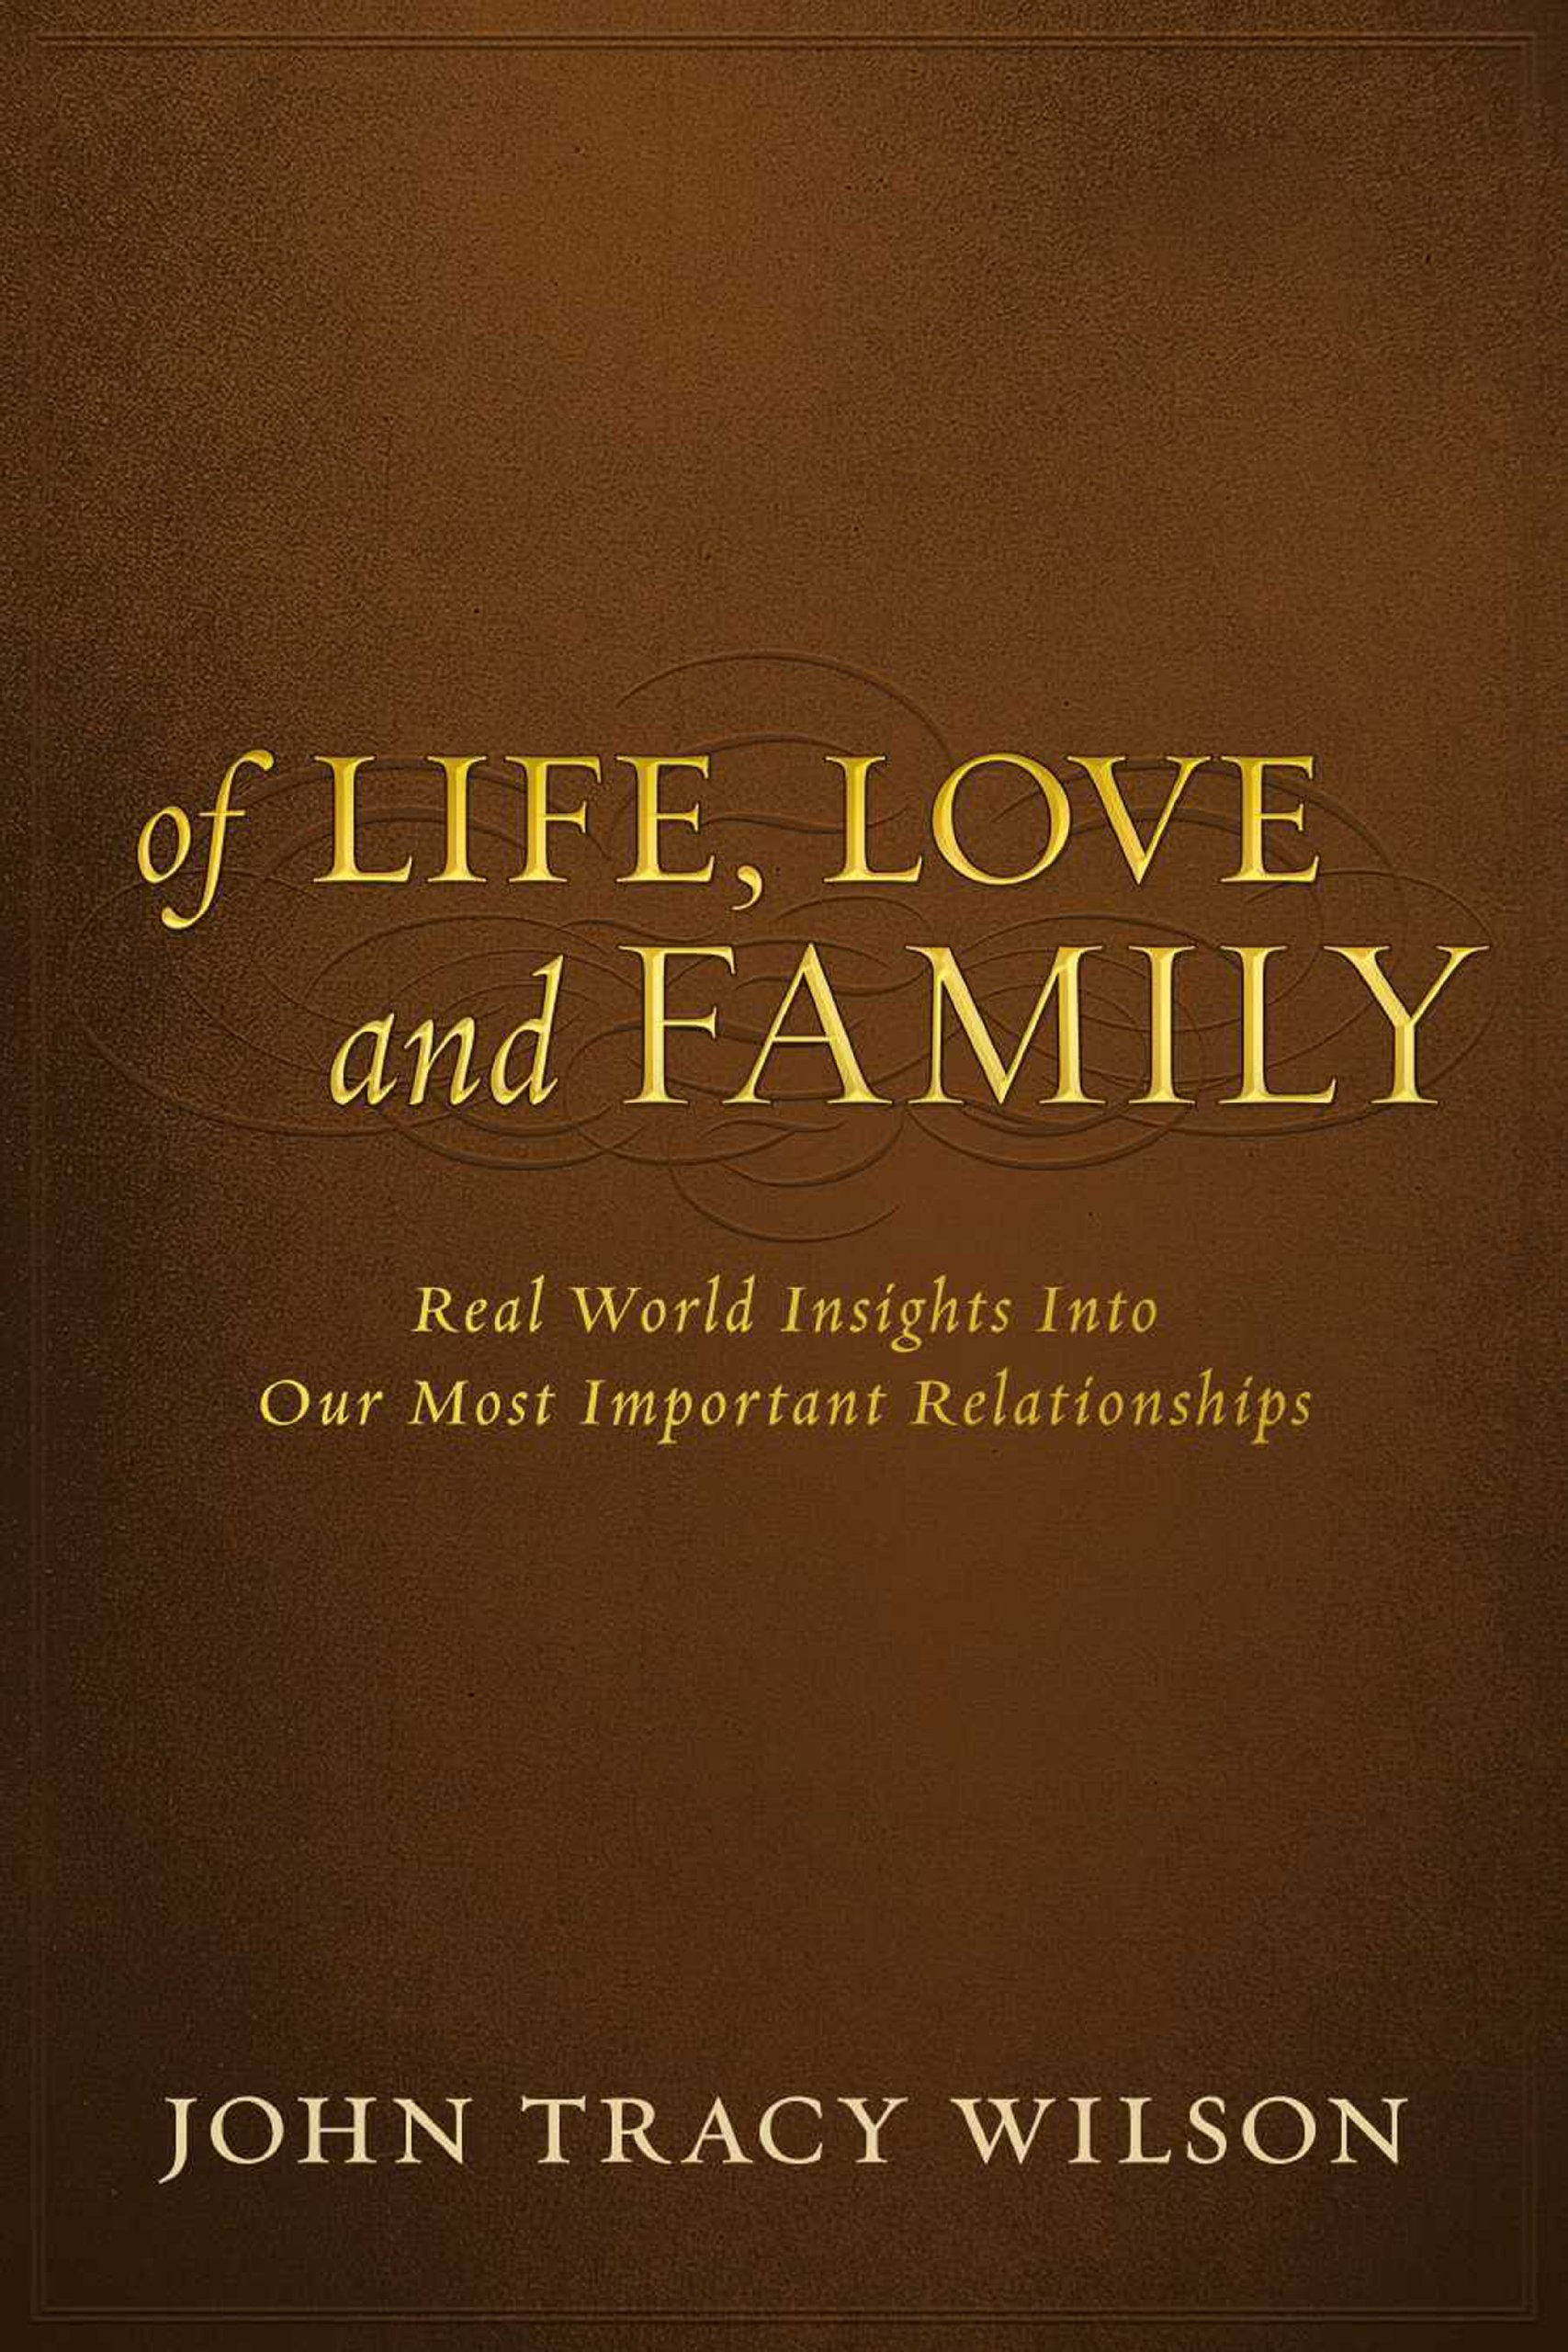 Of Life, Love and Family pdf